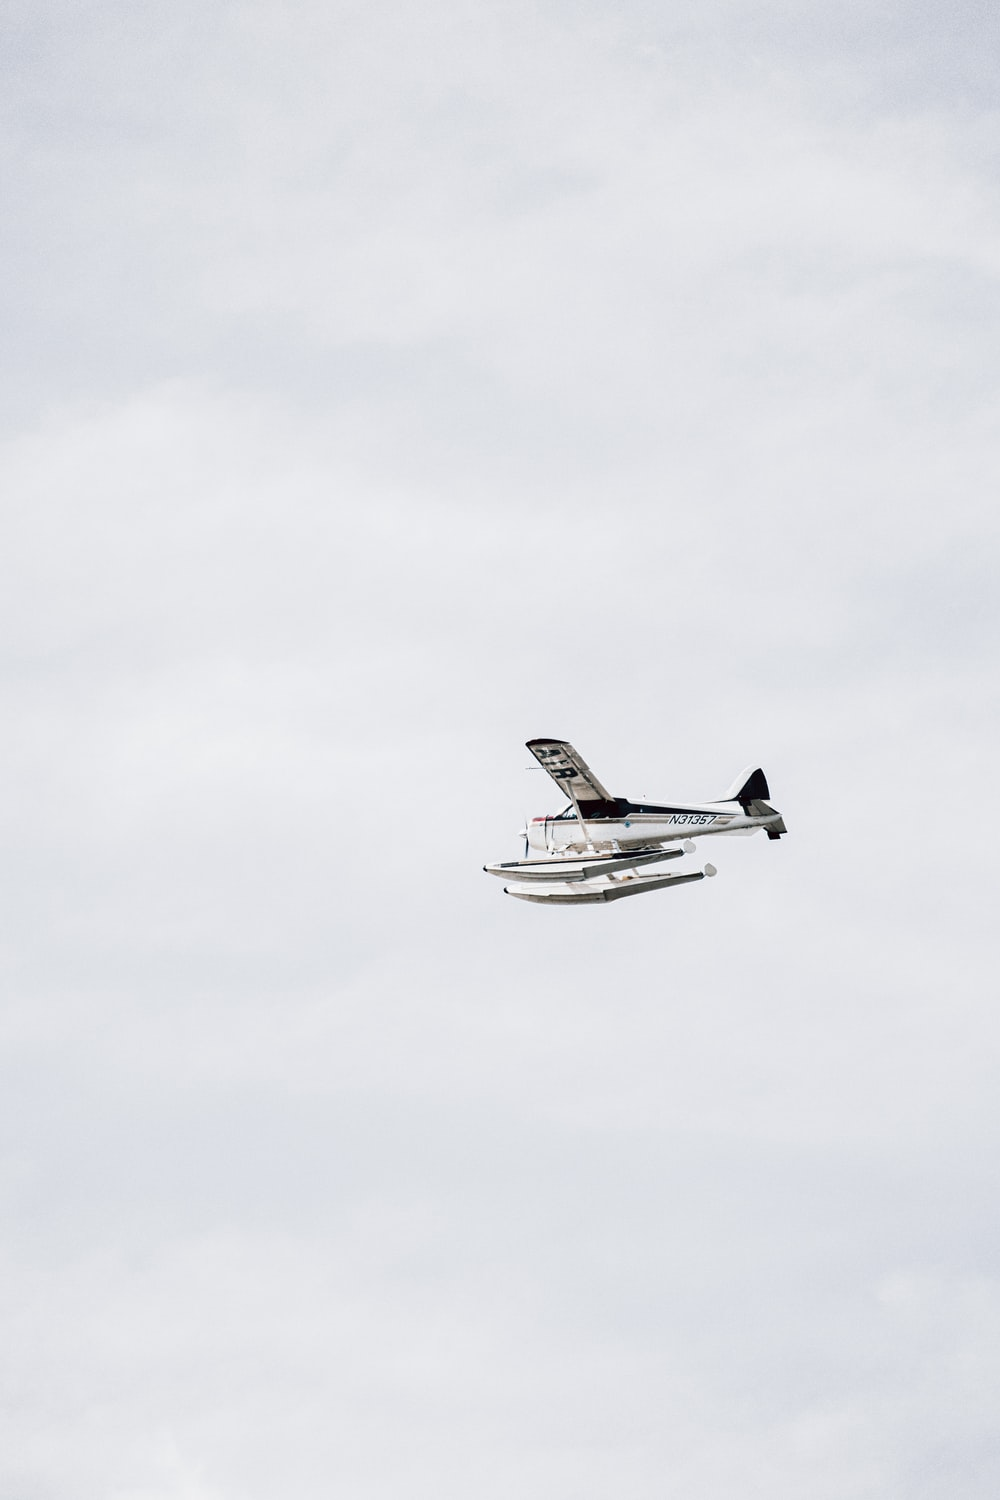 white and black airplane flying in the sky